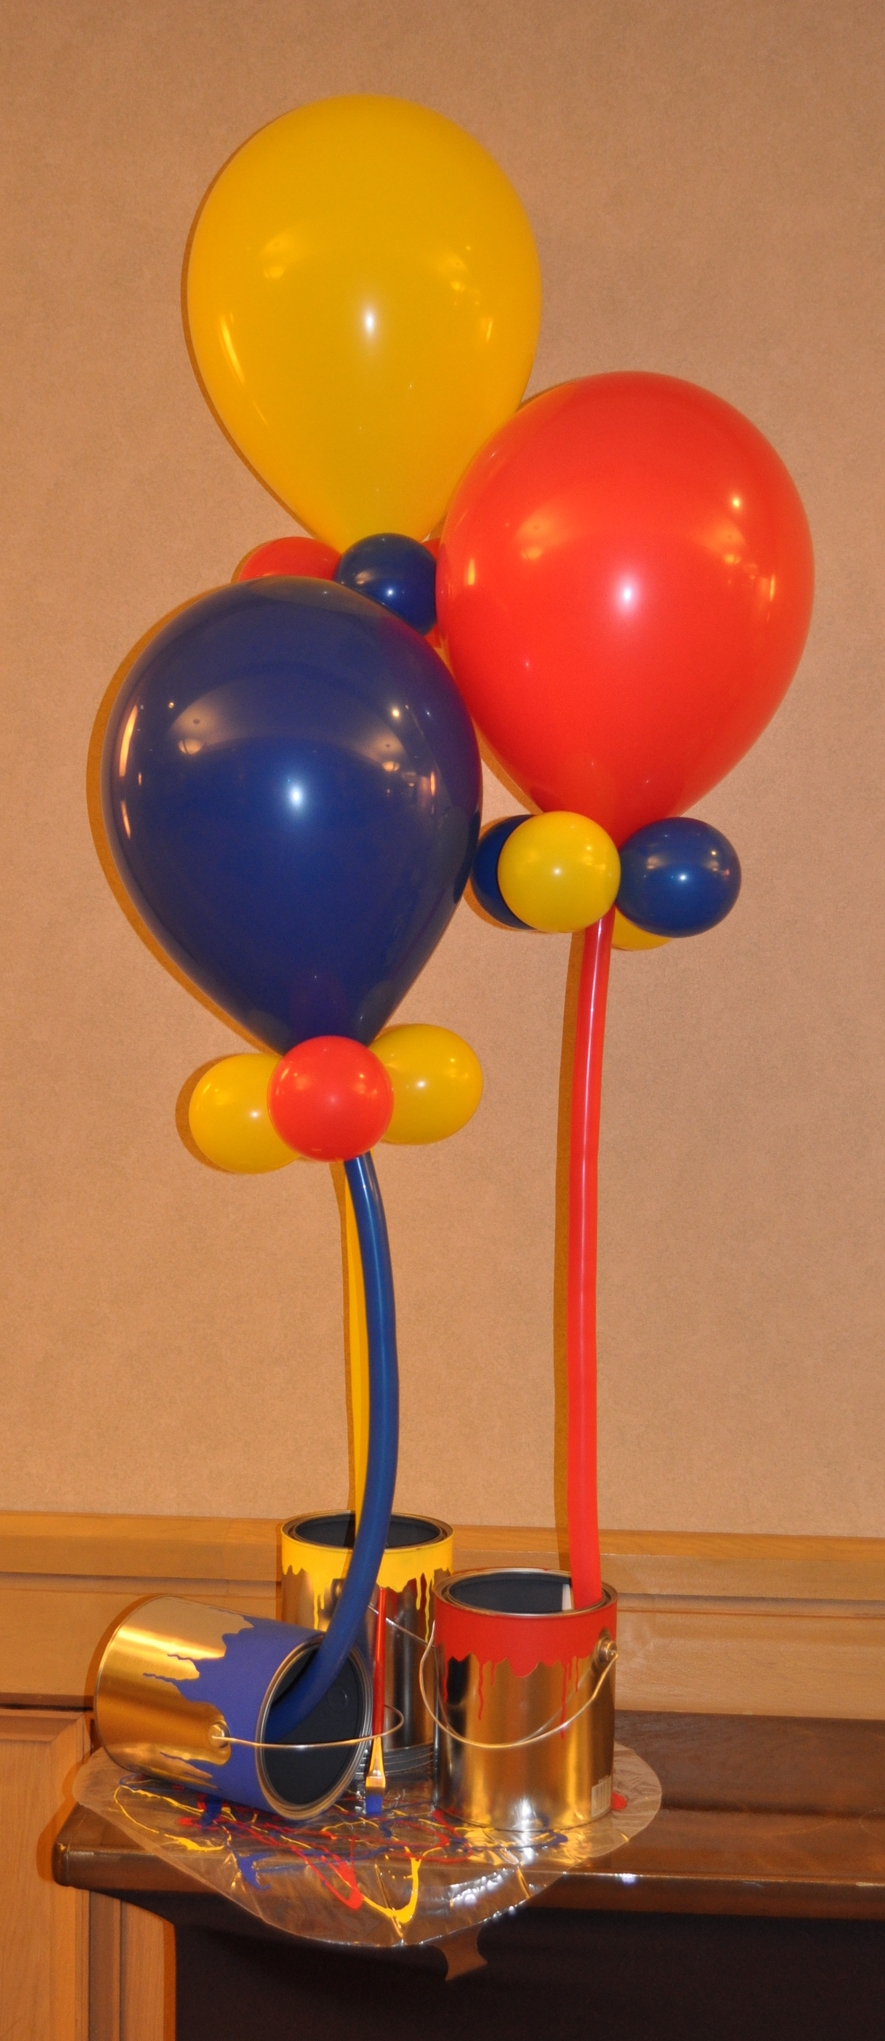 Balloon display celebrating an art event